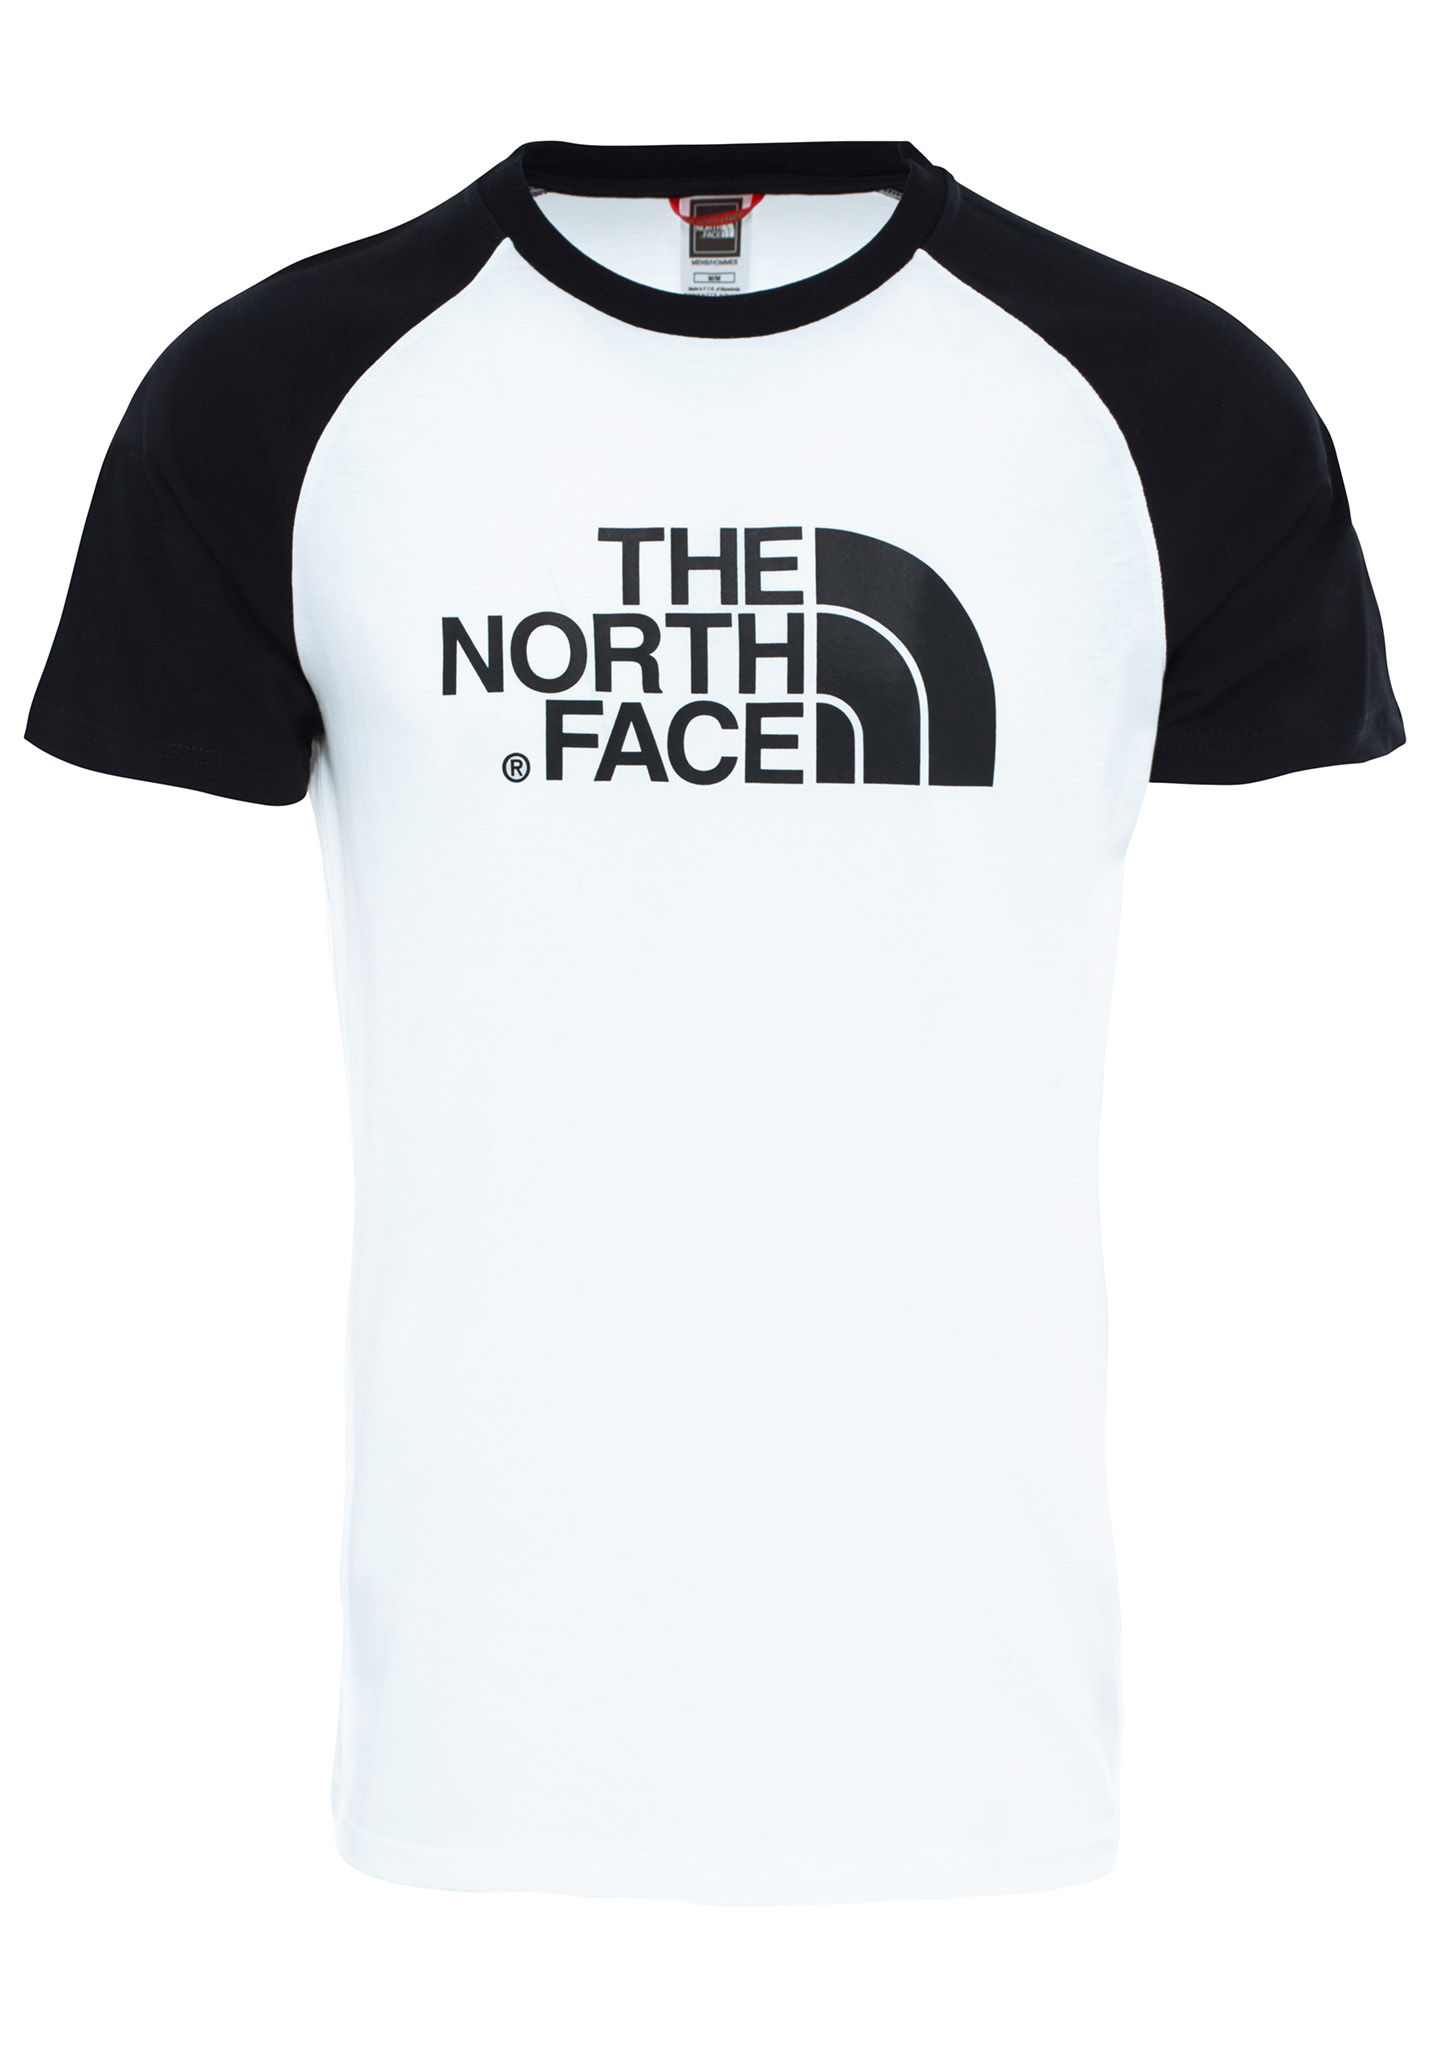 4ae7a30c1 THE NORTH FACE Raglan Easy - T-Shirt for Men - White